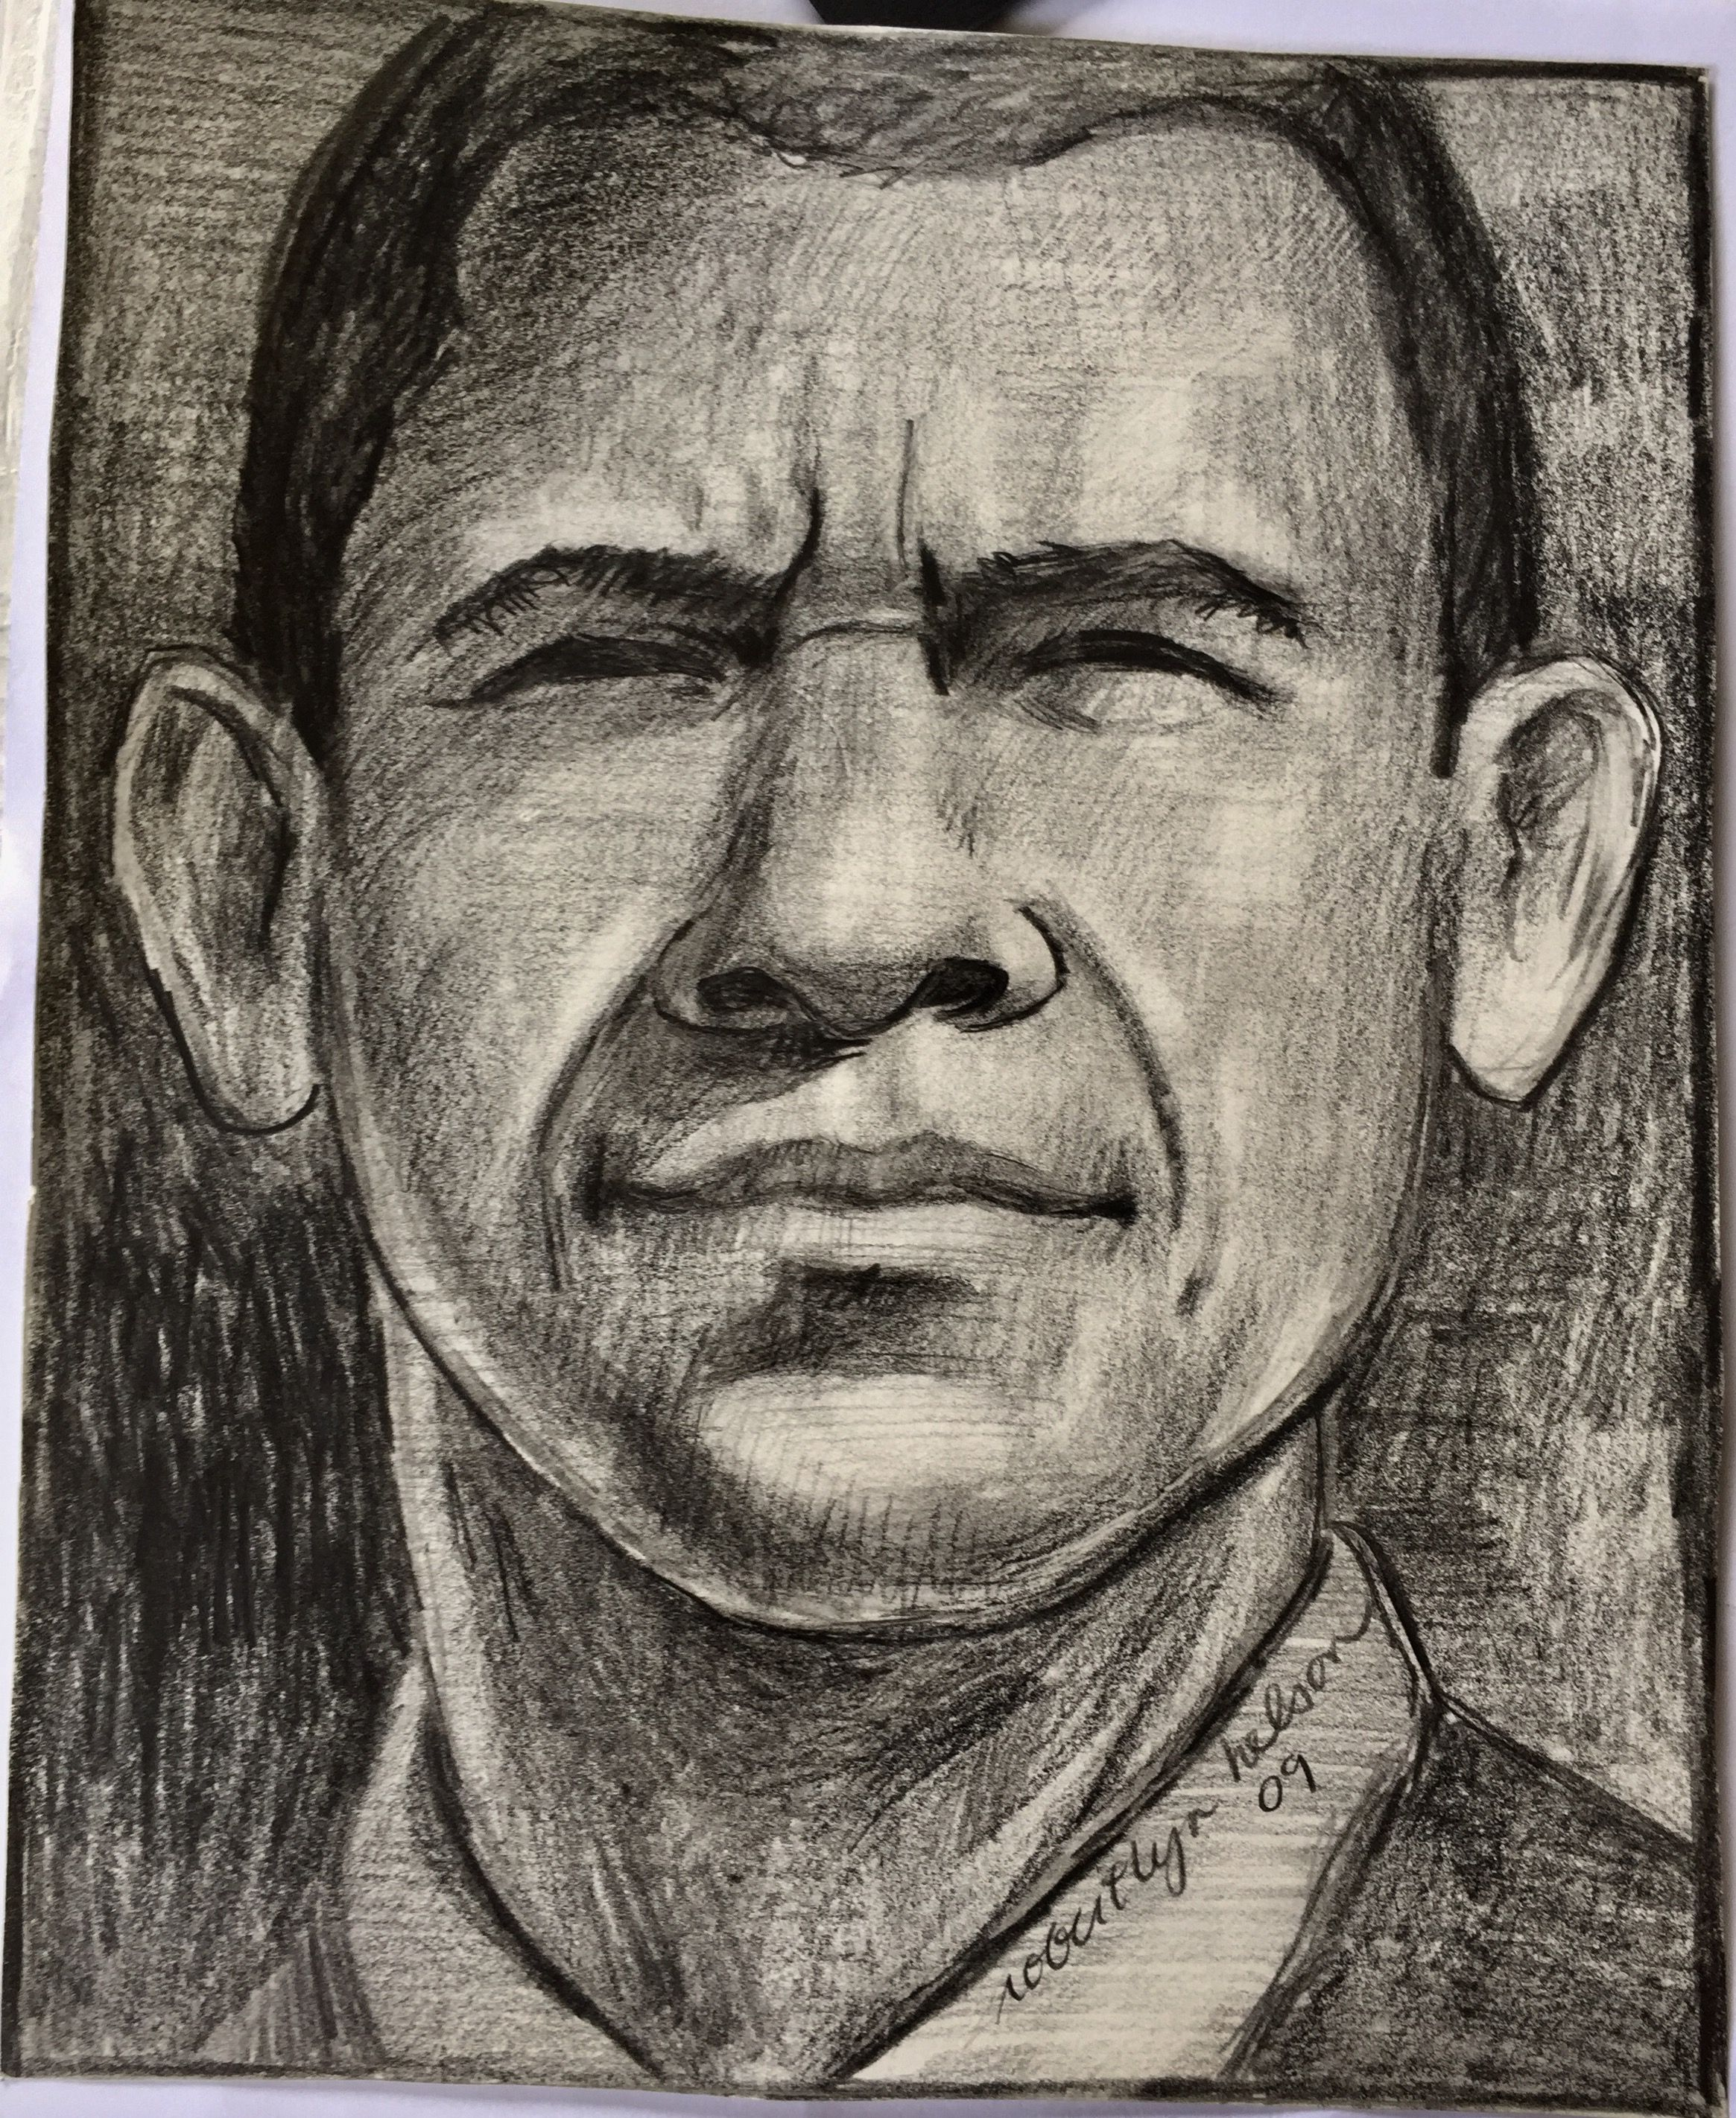 2330x2843 President Obama Sketch By Robert Lyn Nelson 2009 9x12 Pencil